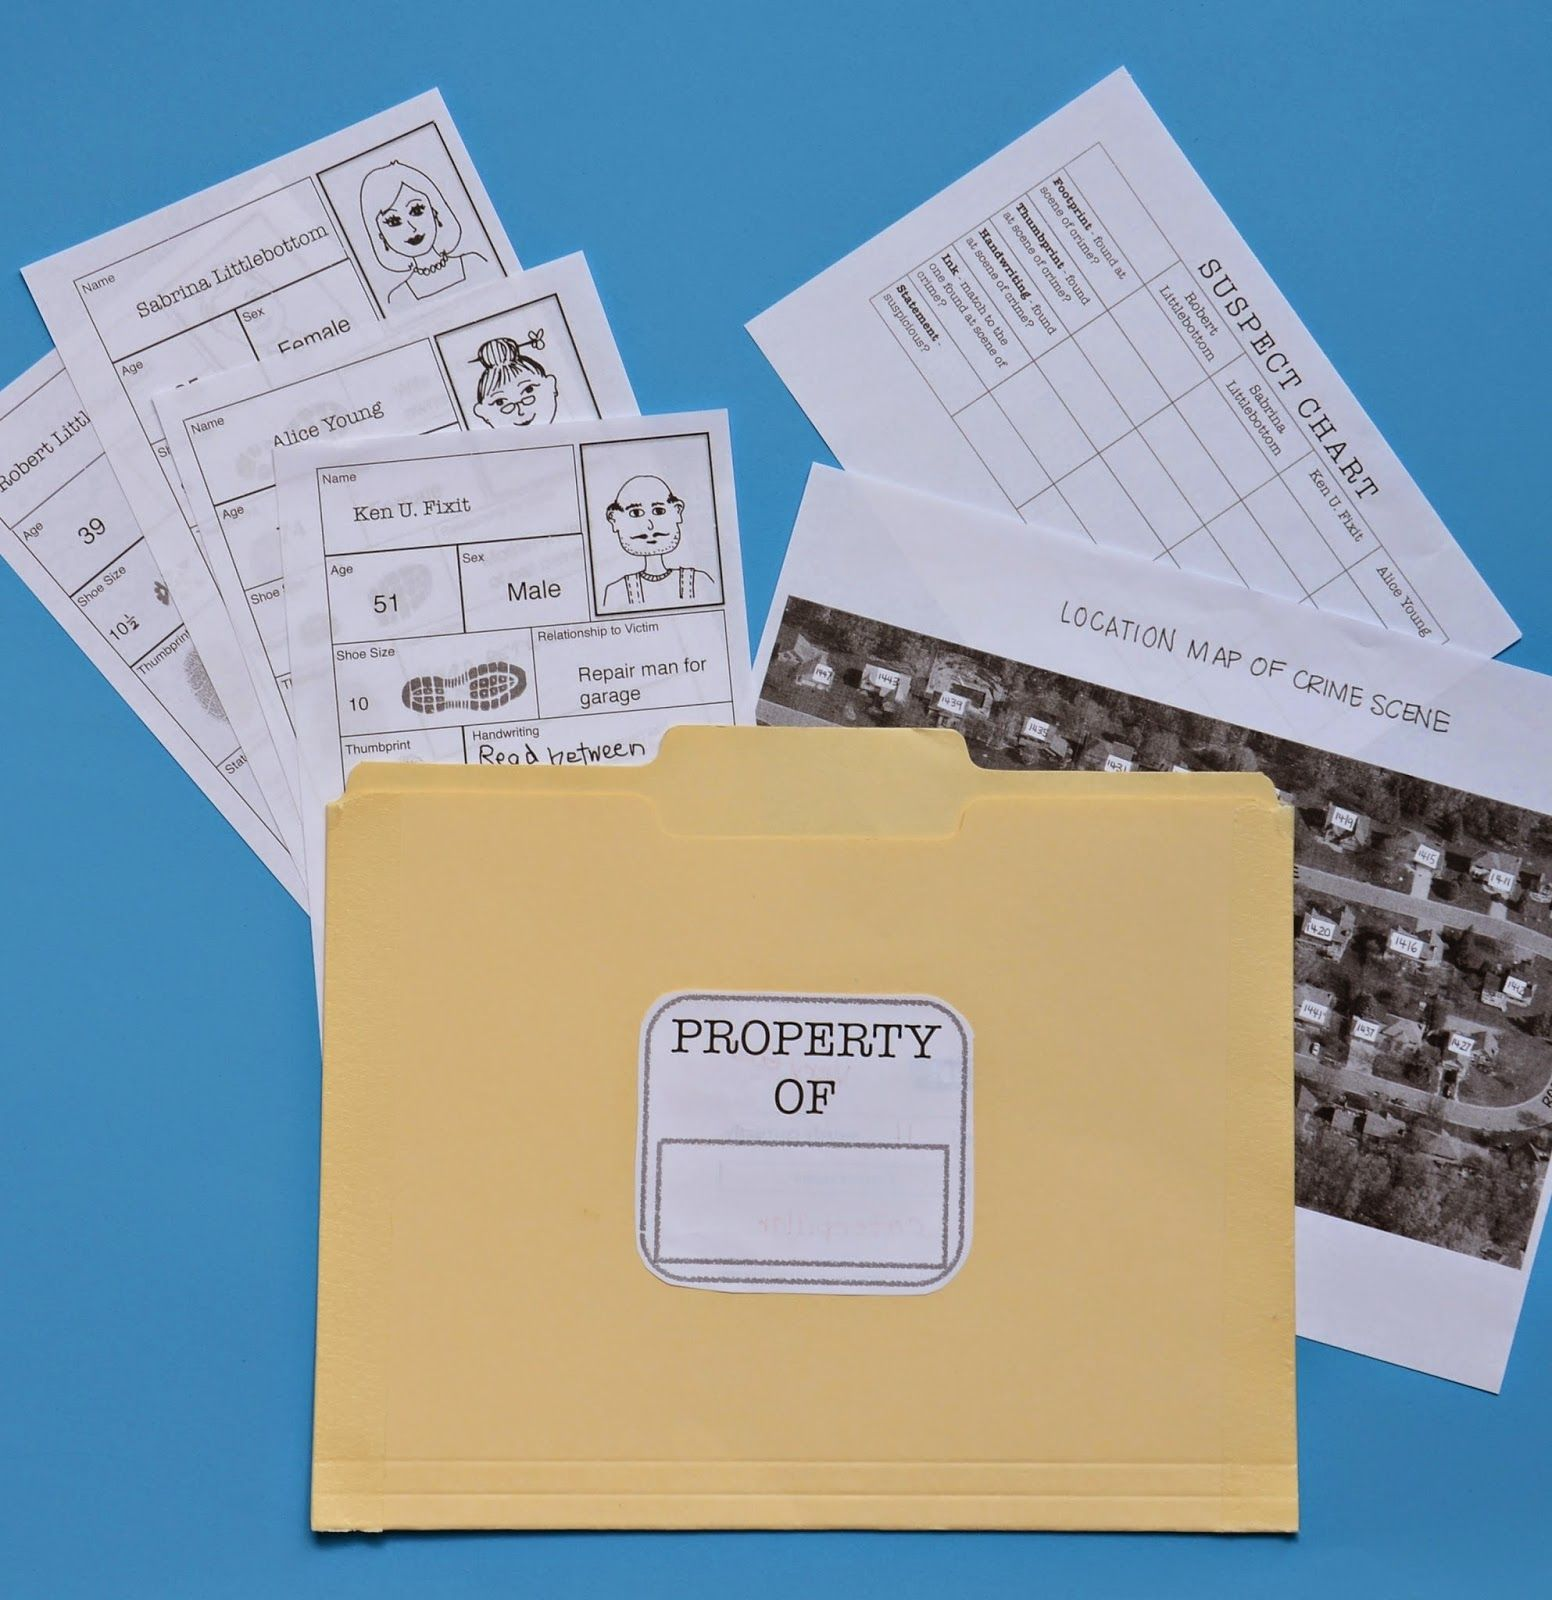 Mystery Party Activity Resources 경찰서